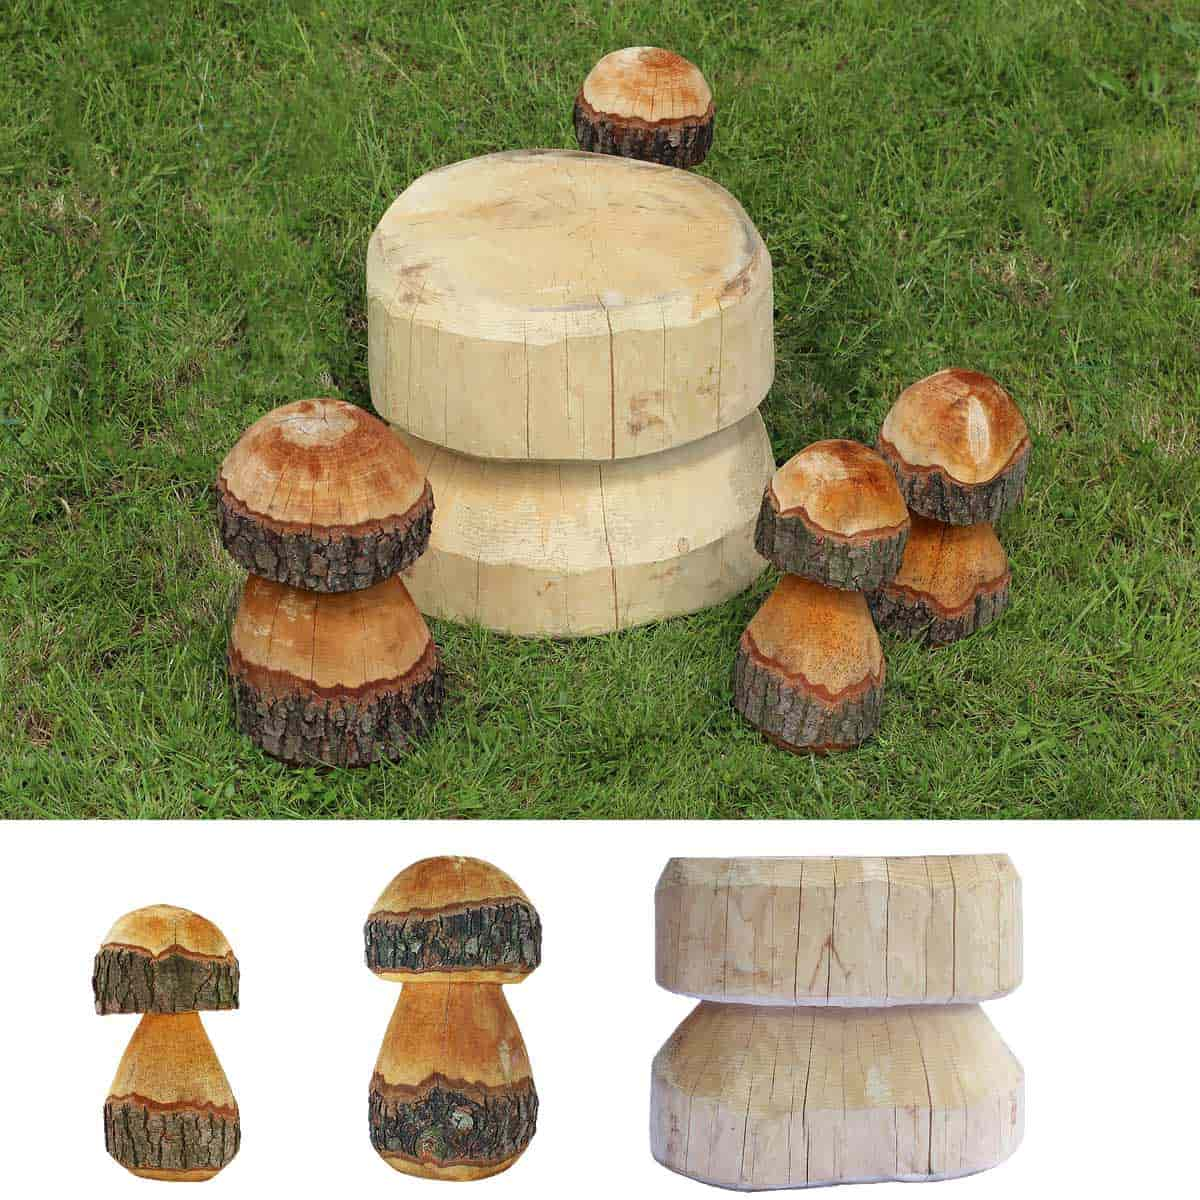 champignons d coratifs en bois mobilier de jardin. Black Bedroom Furniture Sets. Home Design Ideas